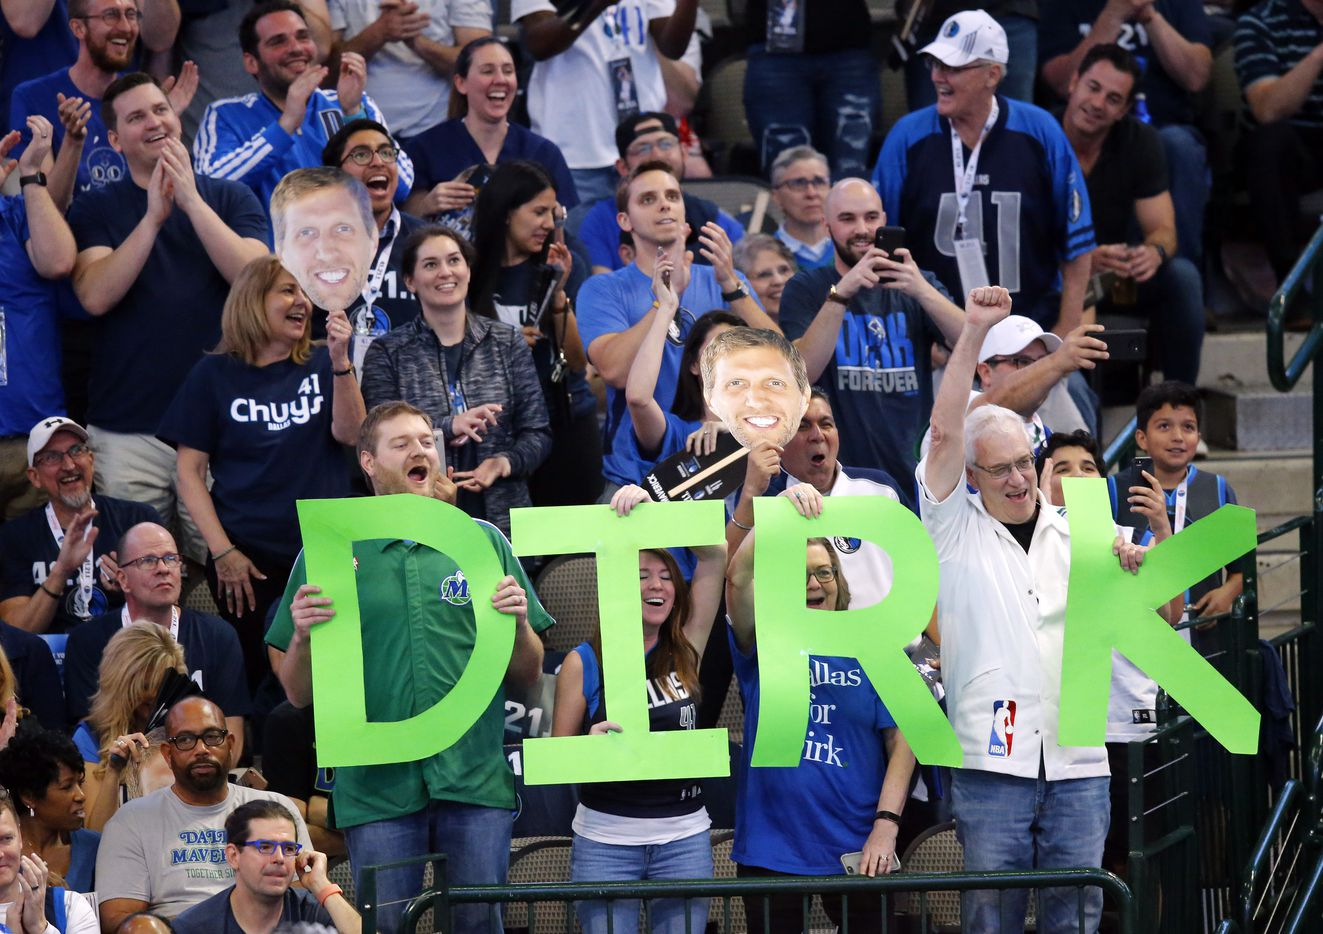 Fans of Dallas Mavericks forward Dirk Nowitzki cheer after he hit a first quarter shot against the Phoenix Suns at the American Airlines Center in Dallas, Tuesday, April 9, 2019. Dirk is playing in his last home game of his 21st season with the team. (Tom Fox/The Dallas Morning News)